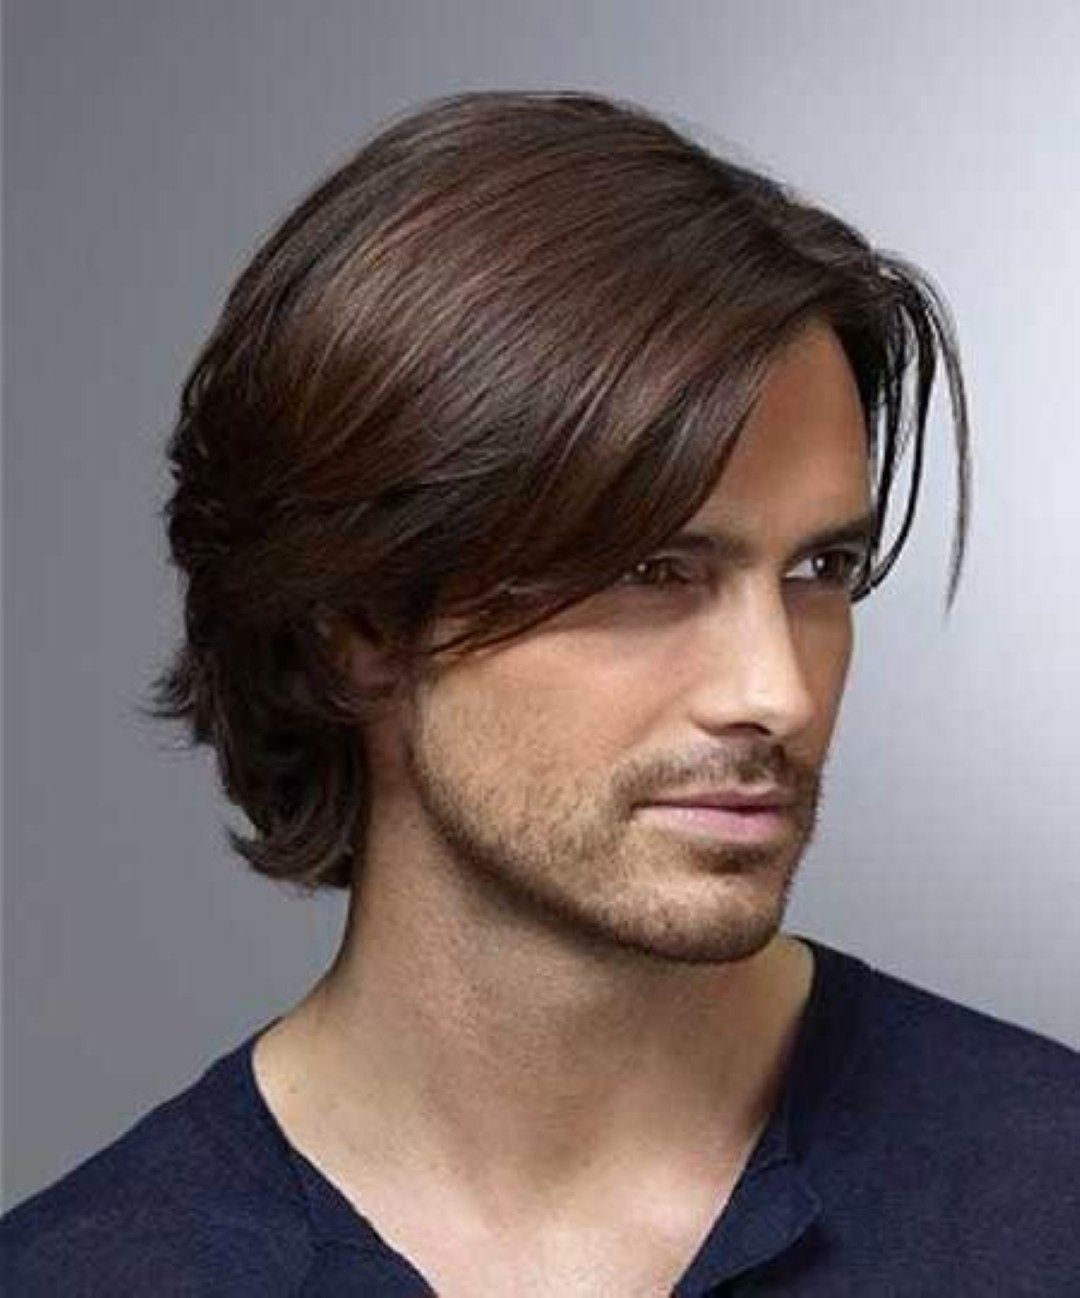 Longer Hairstyles For Men Impressive Hairstyles For Men With Long Thick Hair  Hairstyle  Pinterest